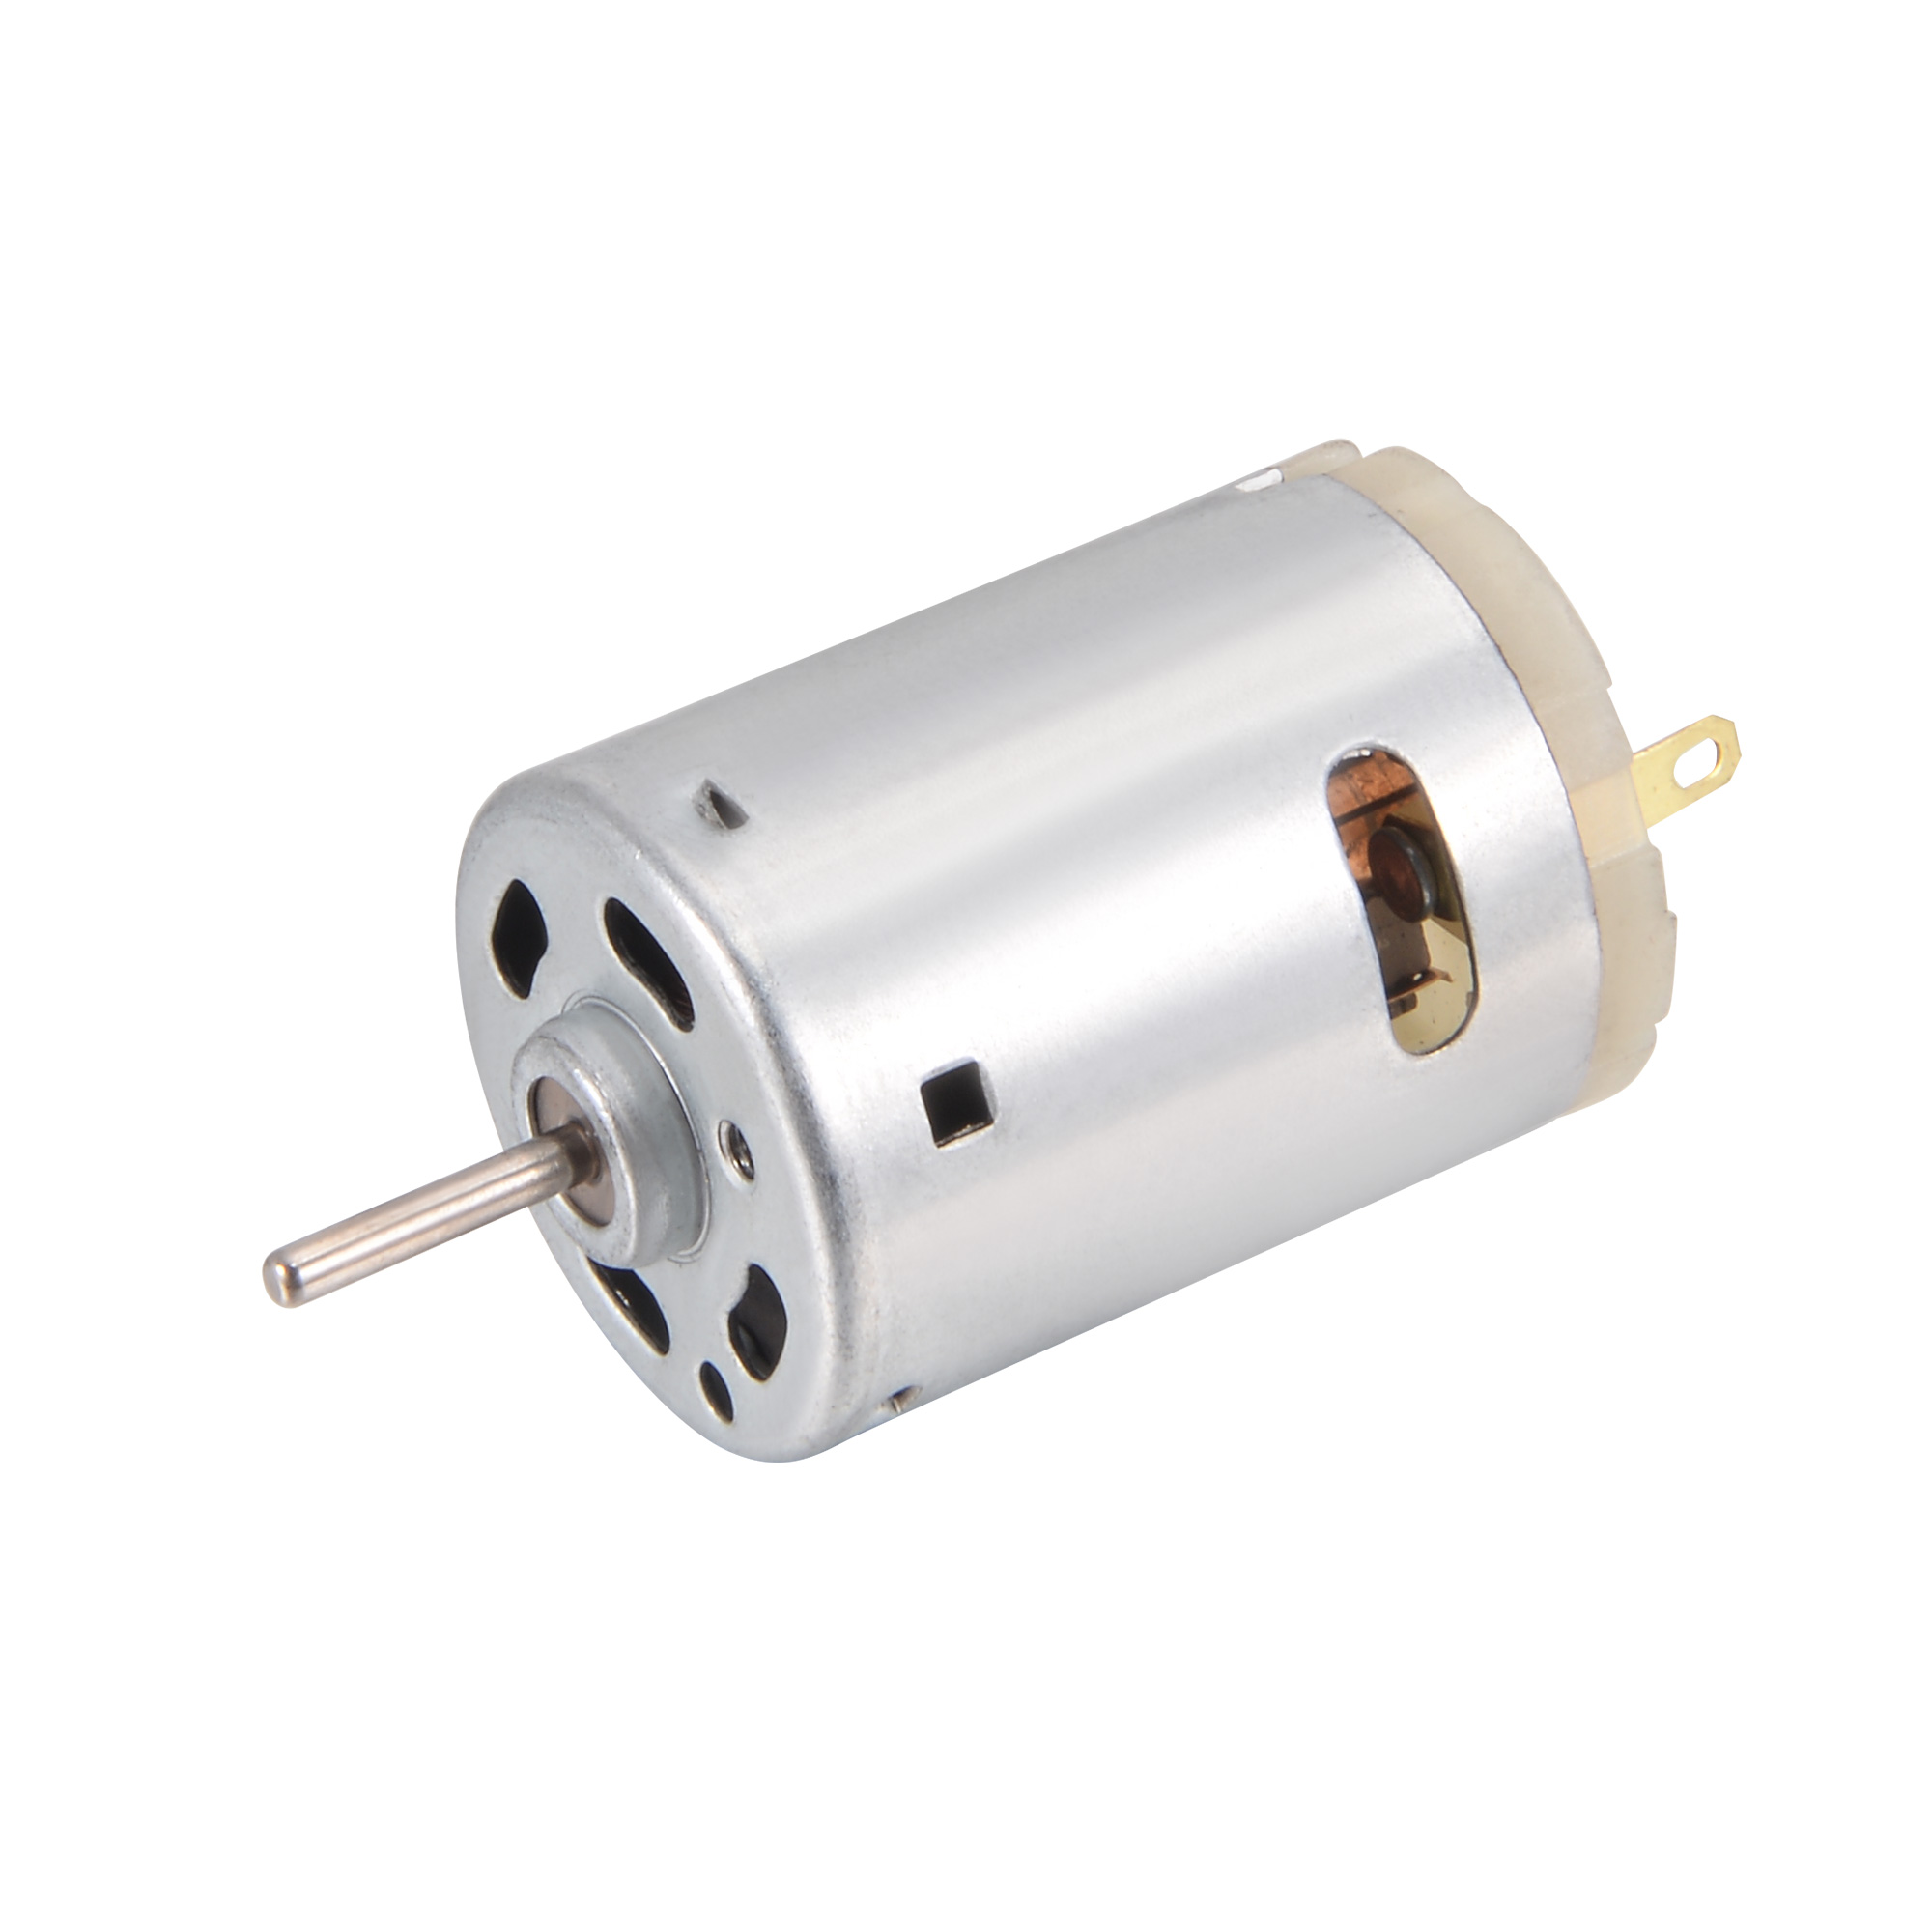 Uxcell(R) DC 12V 6000RPM Mini Magnetic Motor for Smart Cars DIY Toys